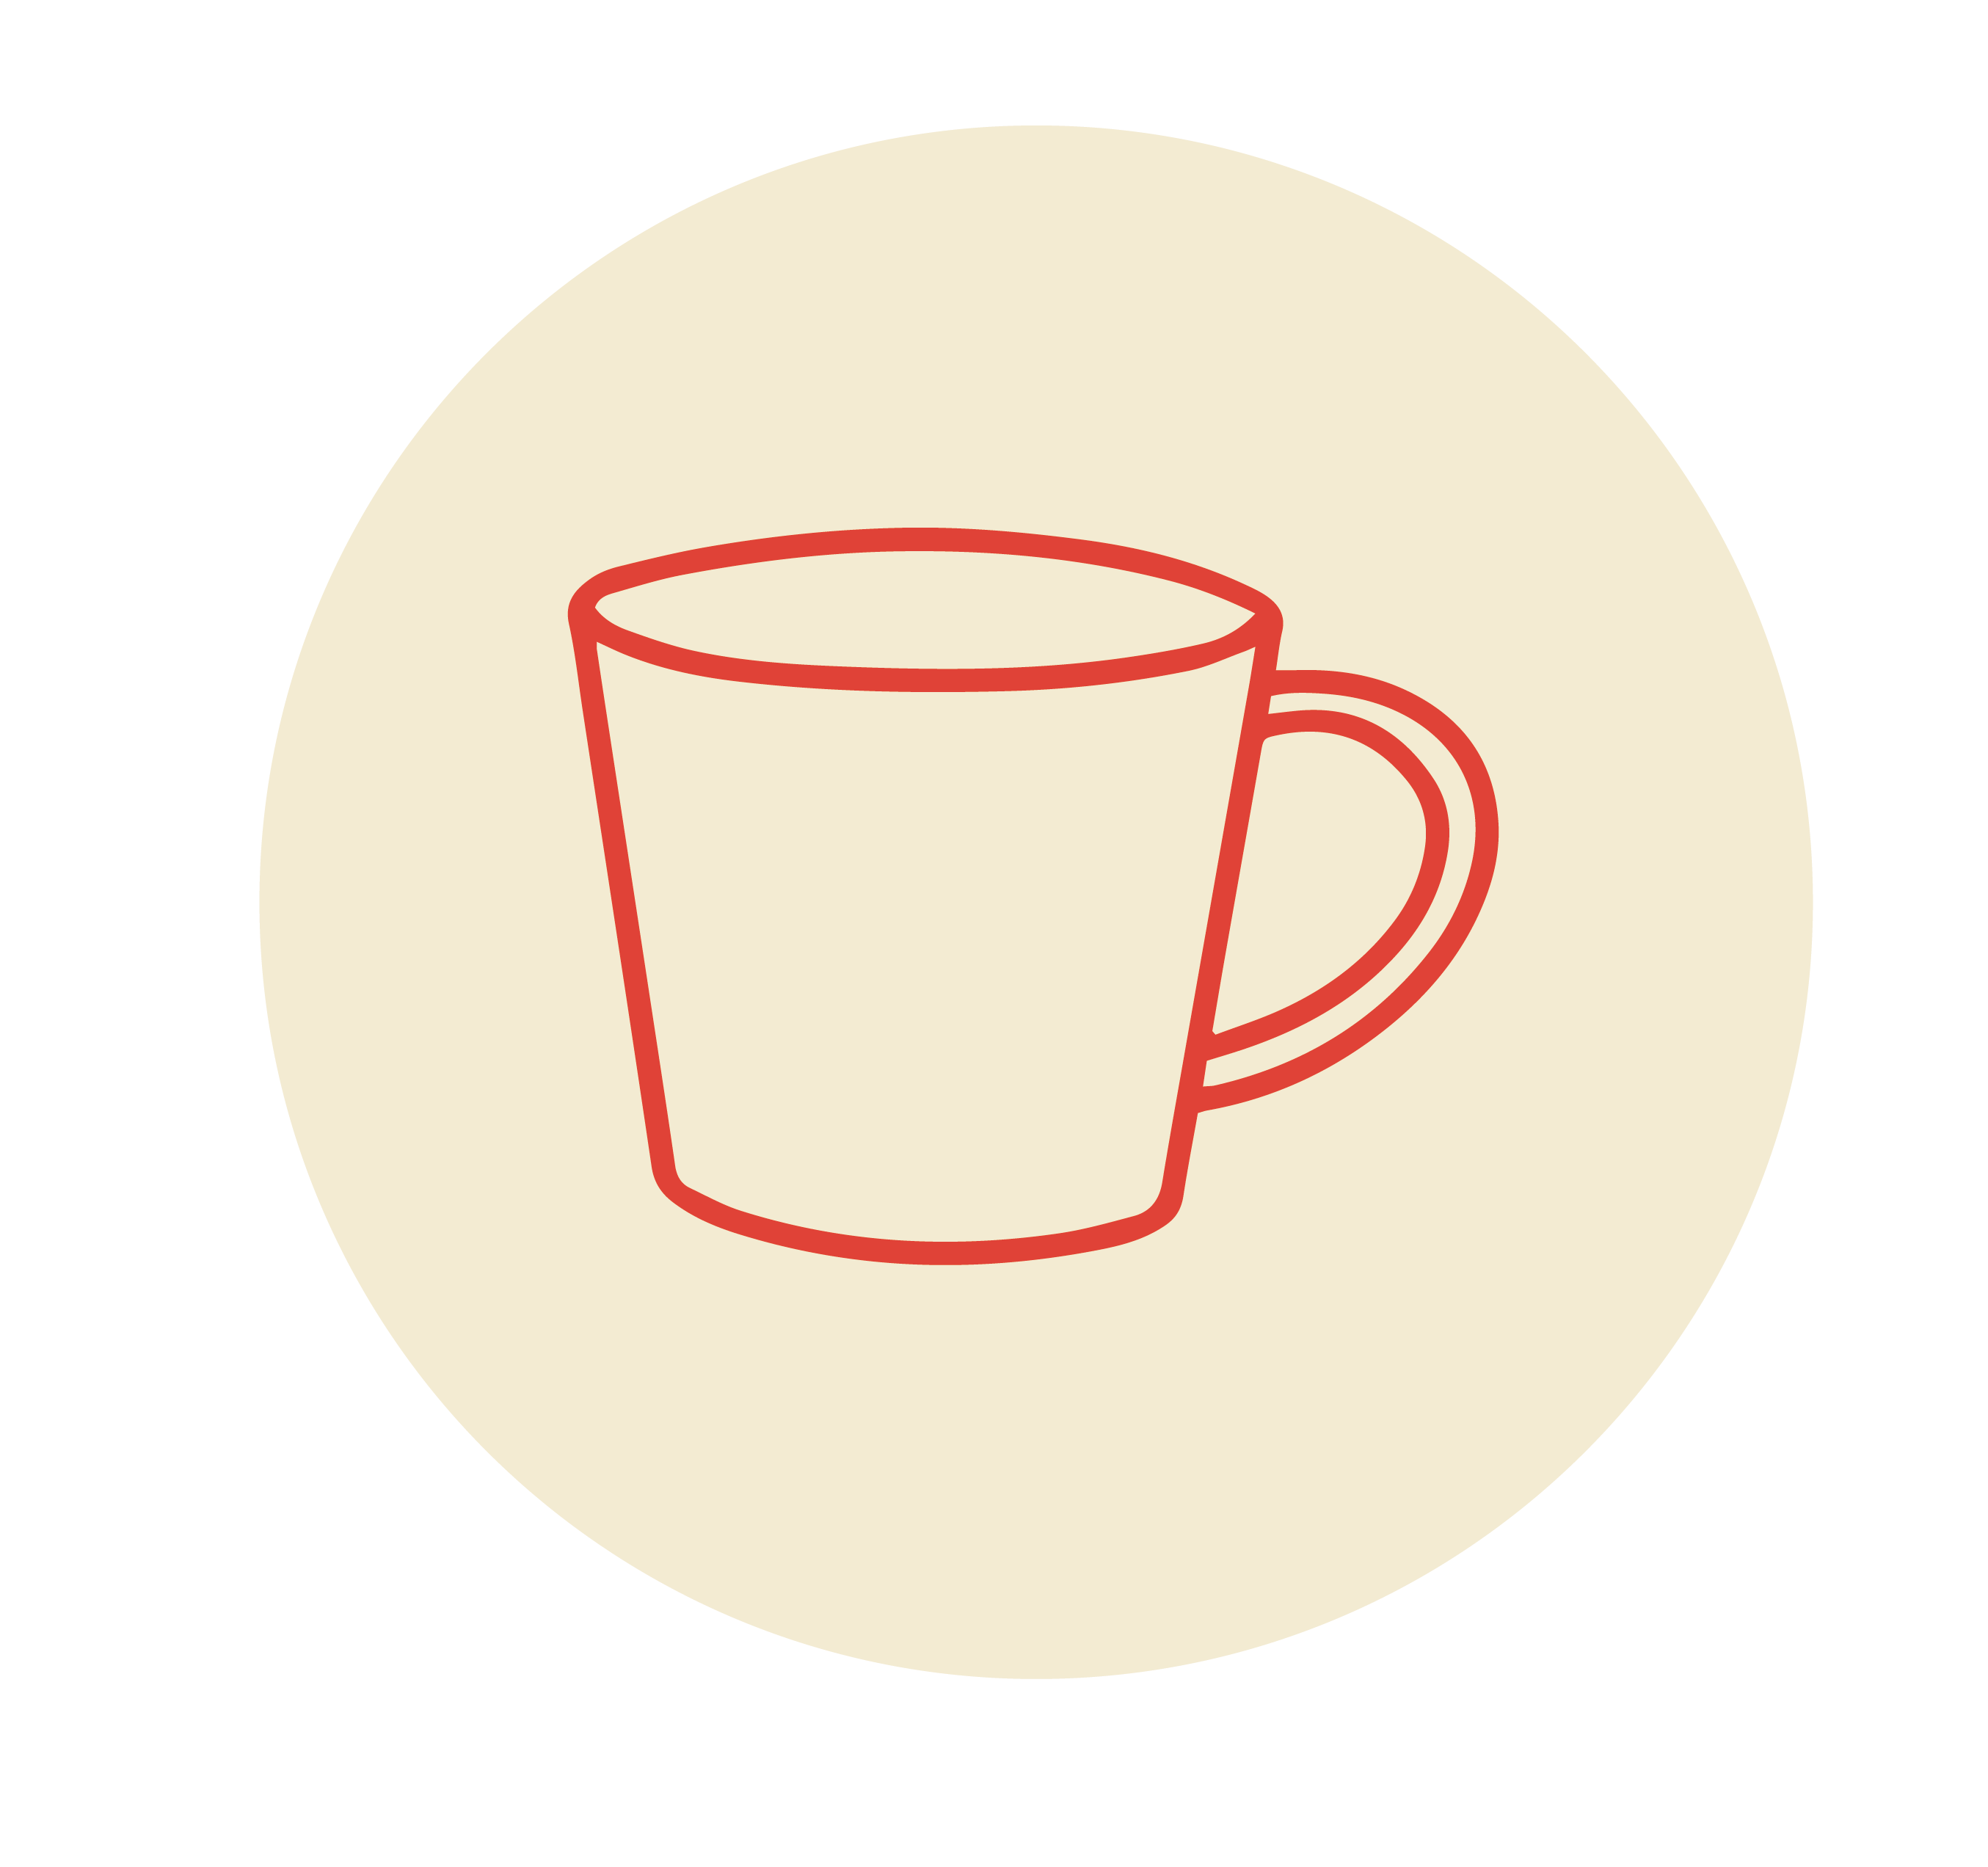 Cups-01.png